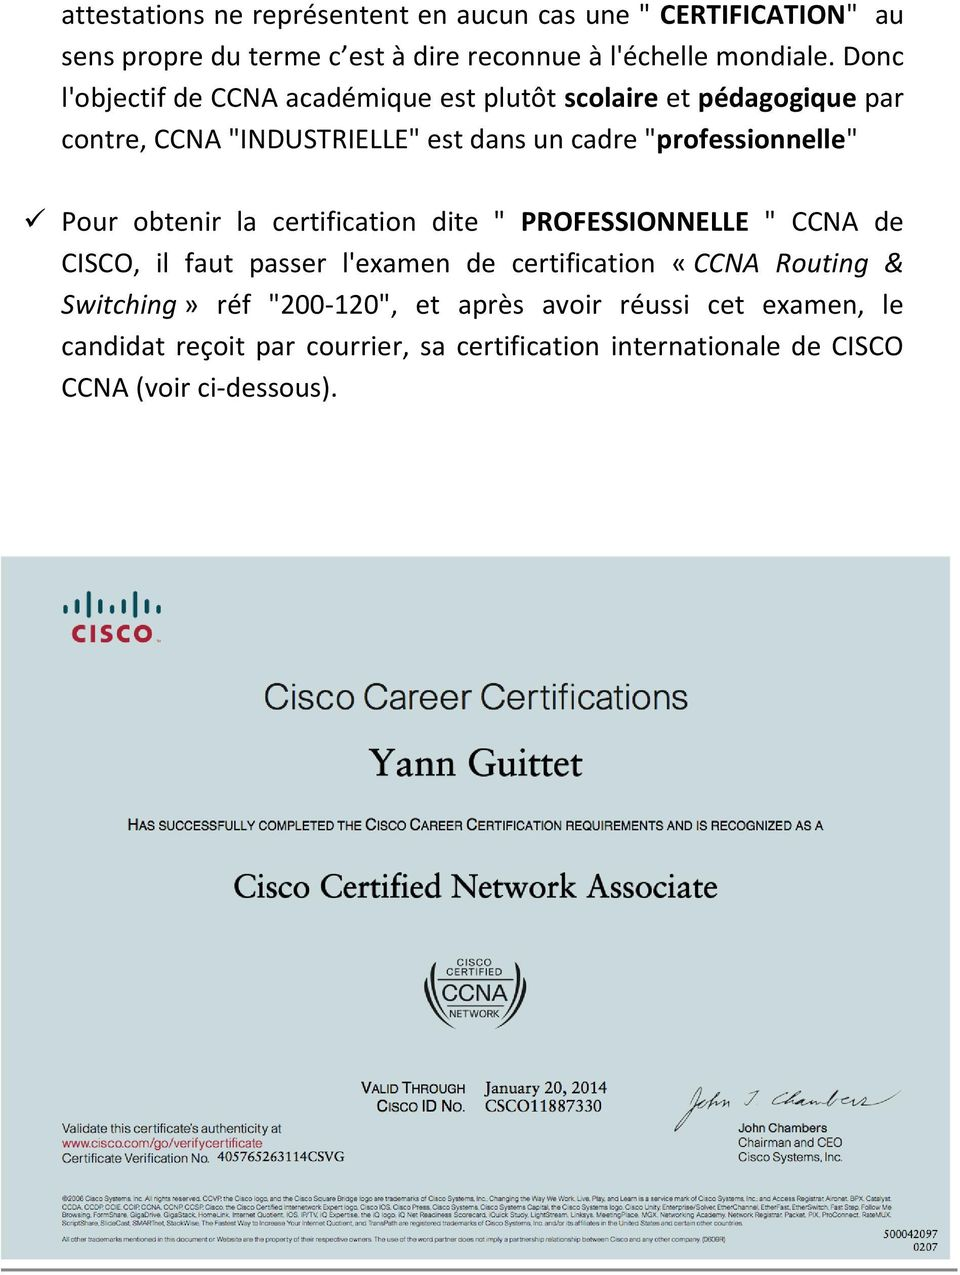 "Pour obtenir la certification dite "" PROFESSIONNELLE "" CCNA de CISCO, il faut passer l'examen de certification «CCNA Routing & Switching»"